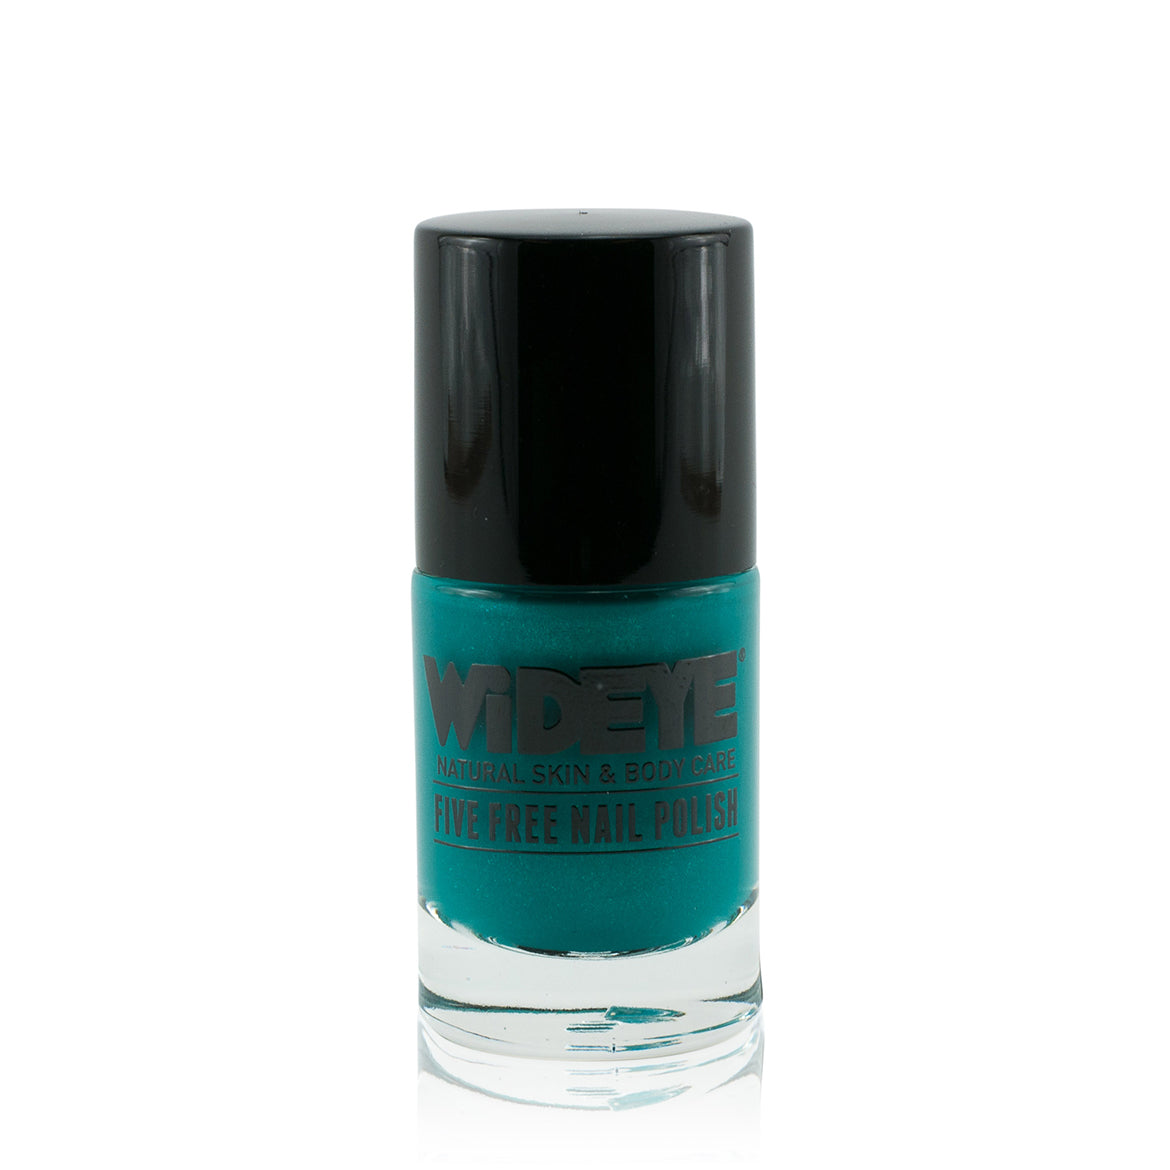 Aquamarine blue nail varnish in glass bottle by WiDEYE